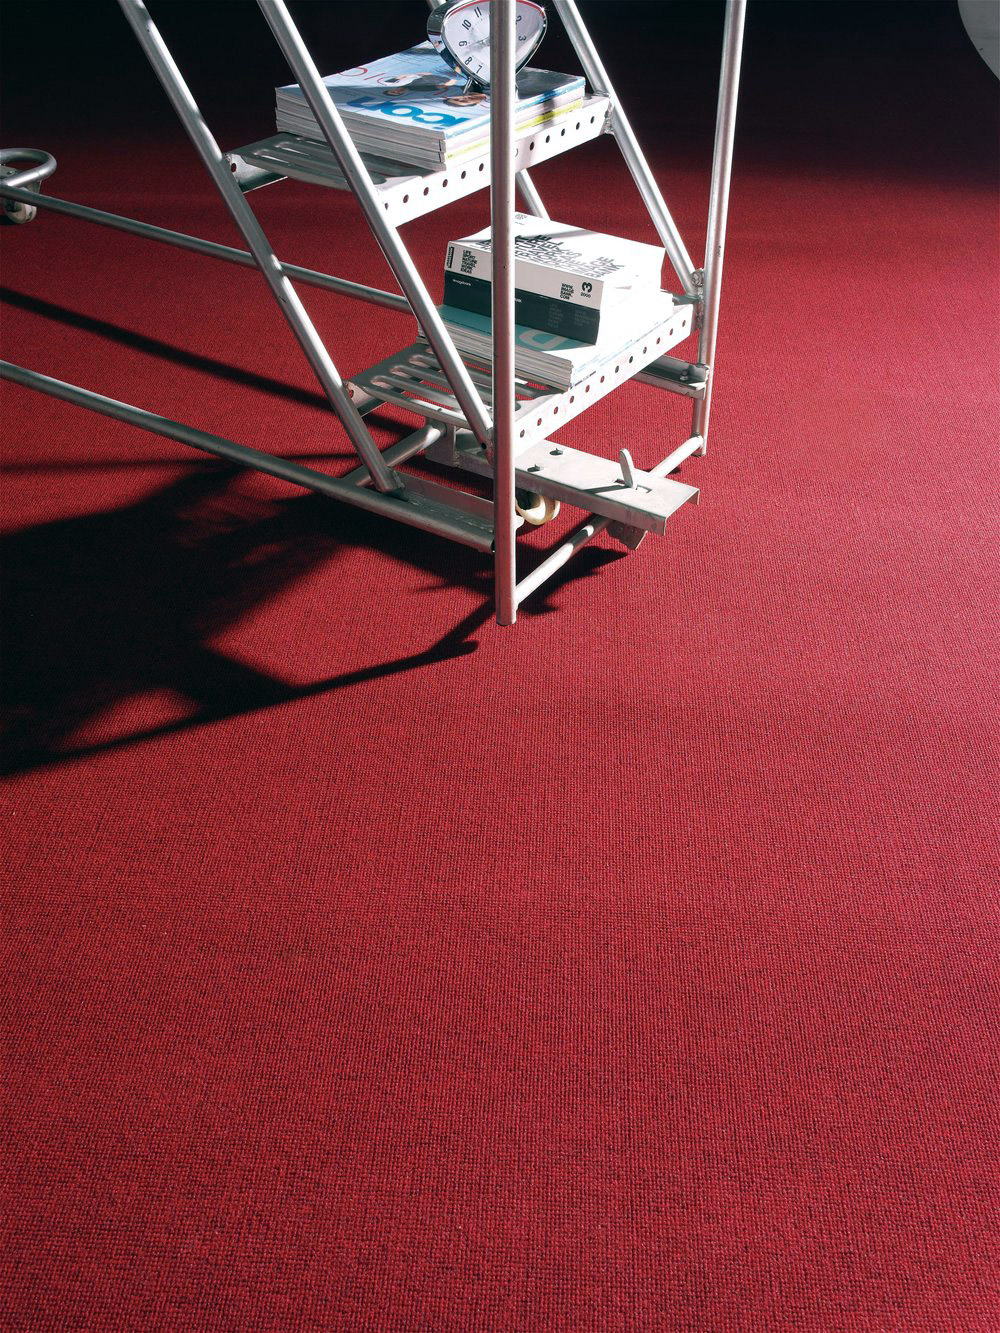 Carpets for the Office | Van Dyck Floors